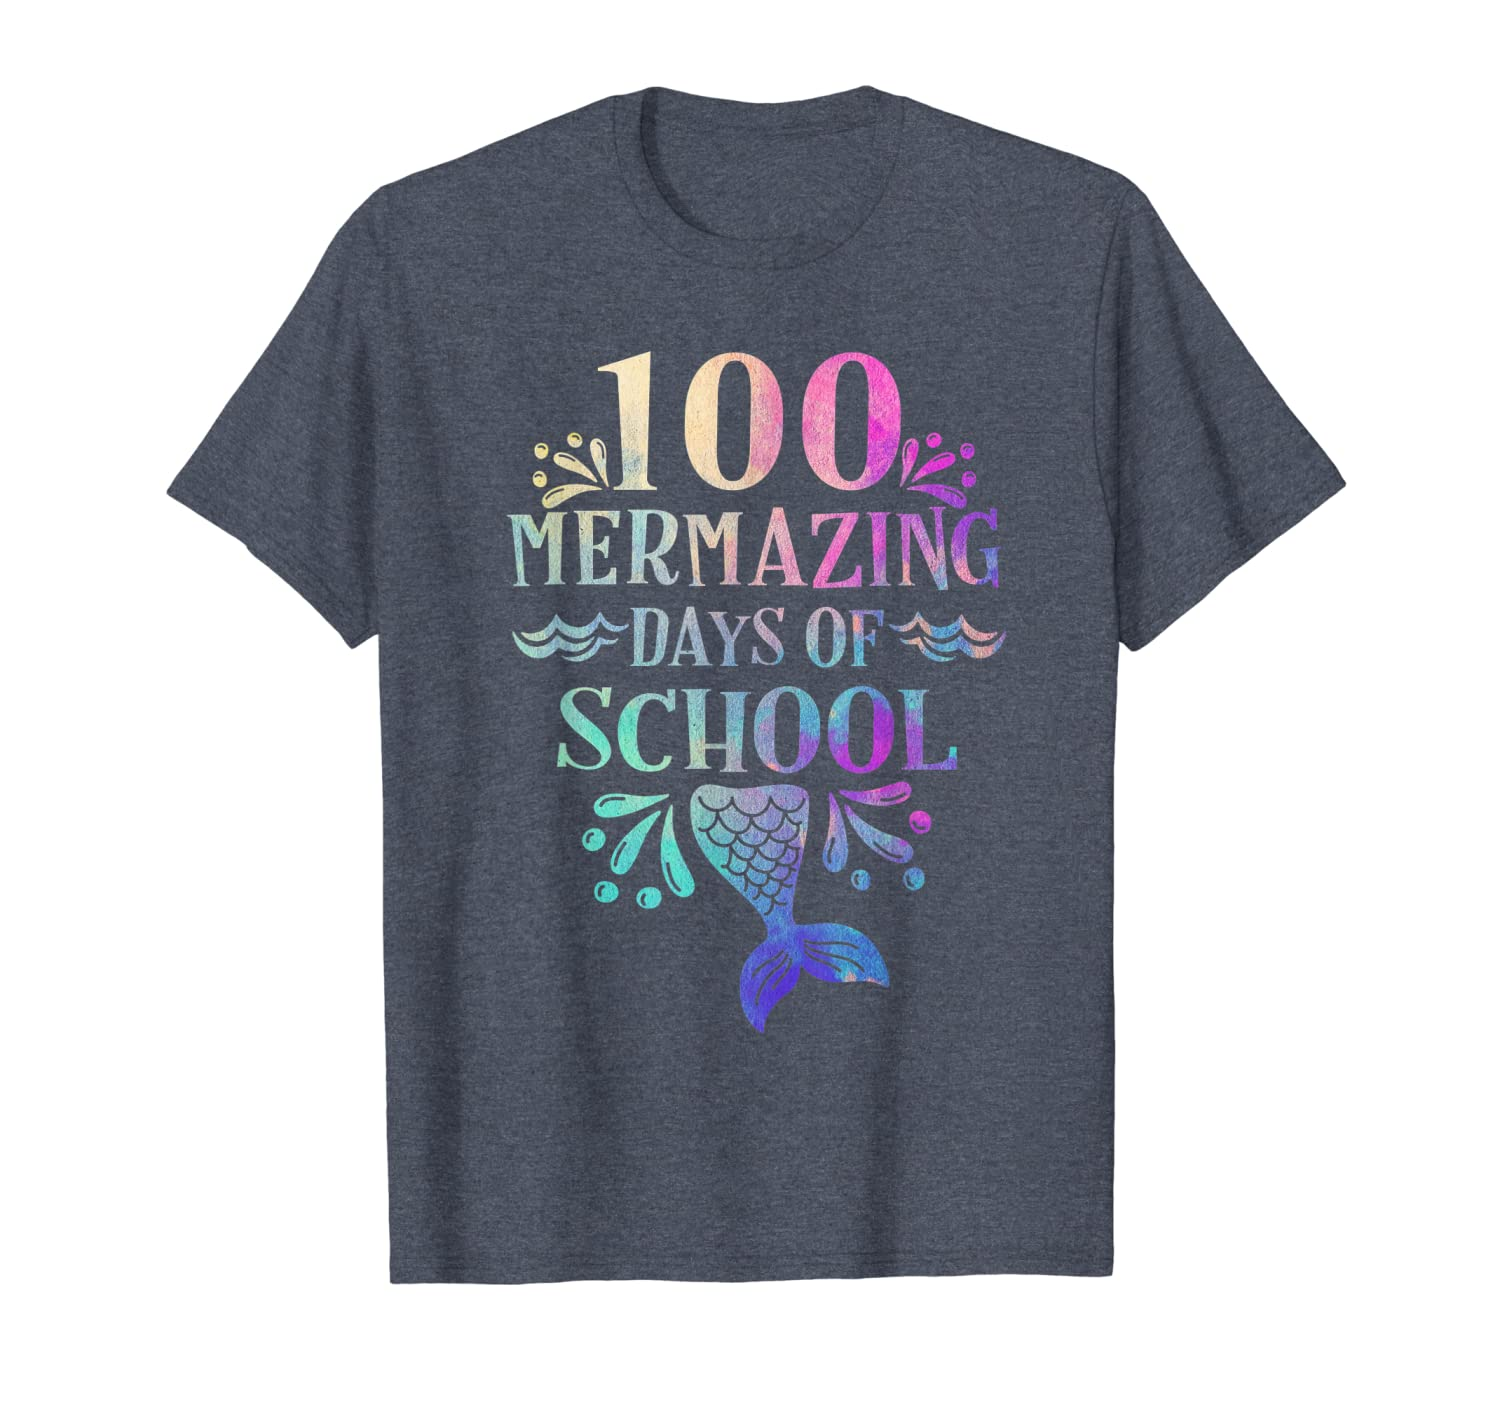 100 Days of School Shirt for Girls Mermaid Happy 100th day T-Shirt Unisex Tshirt